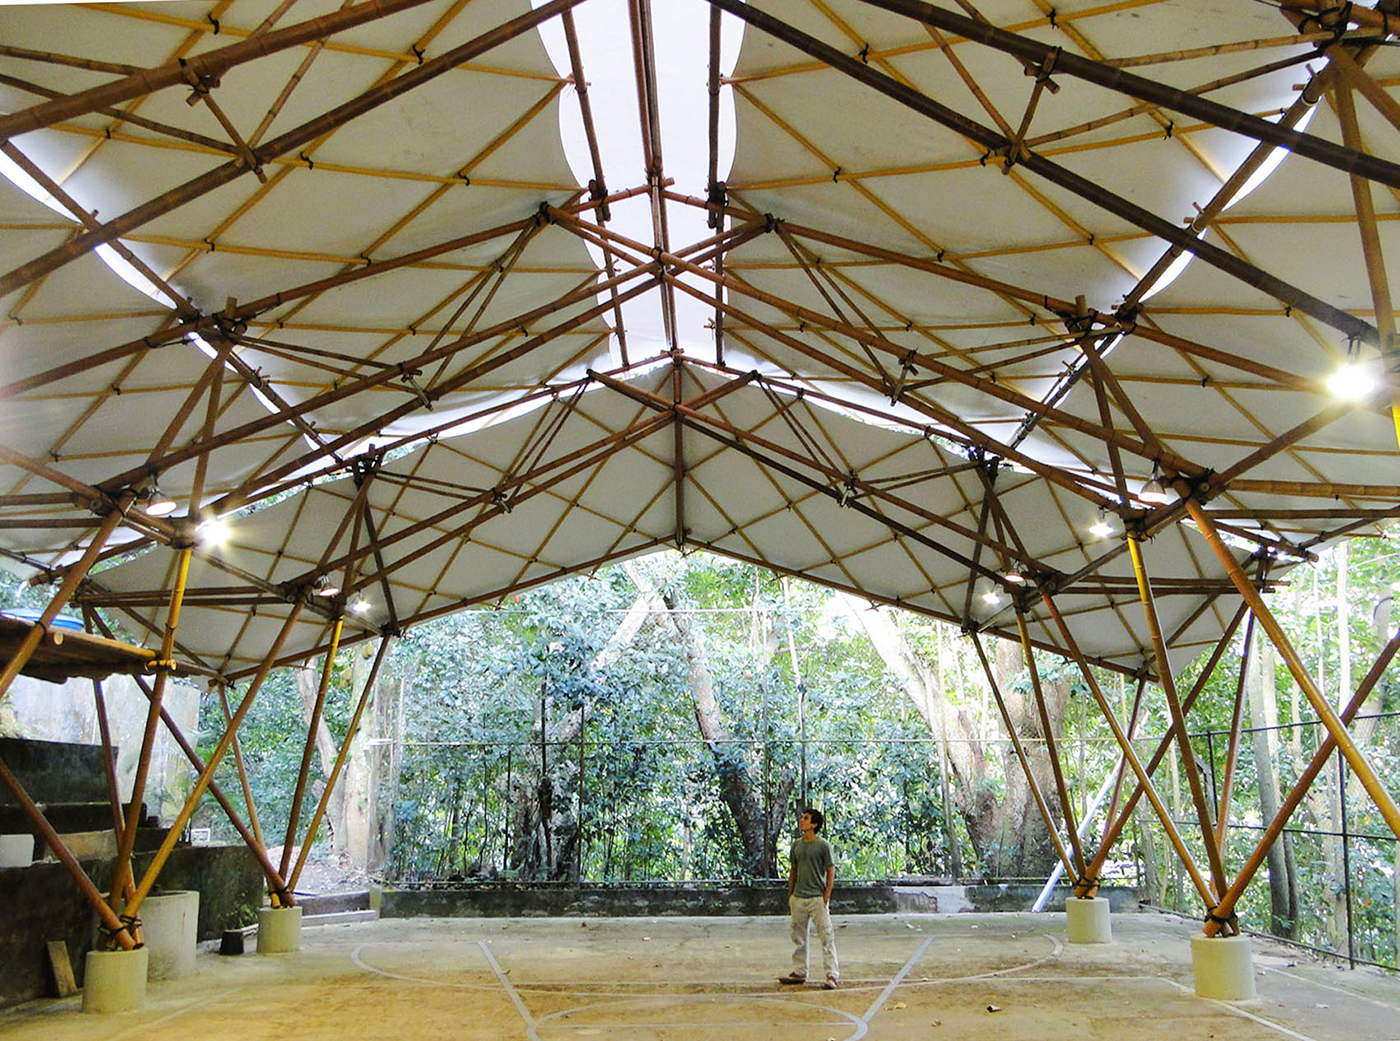 Deployable-bamboo-space-strucure-pavilion-3.jpg